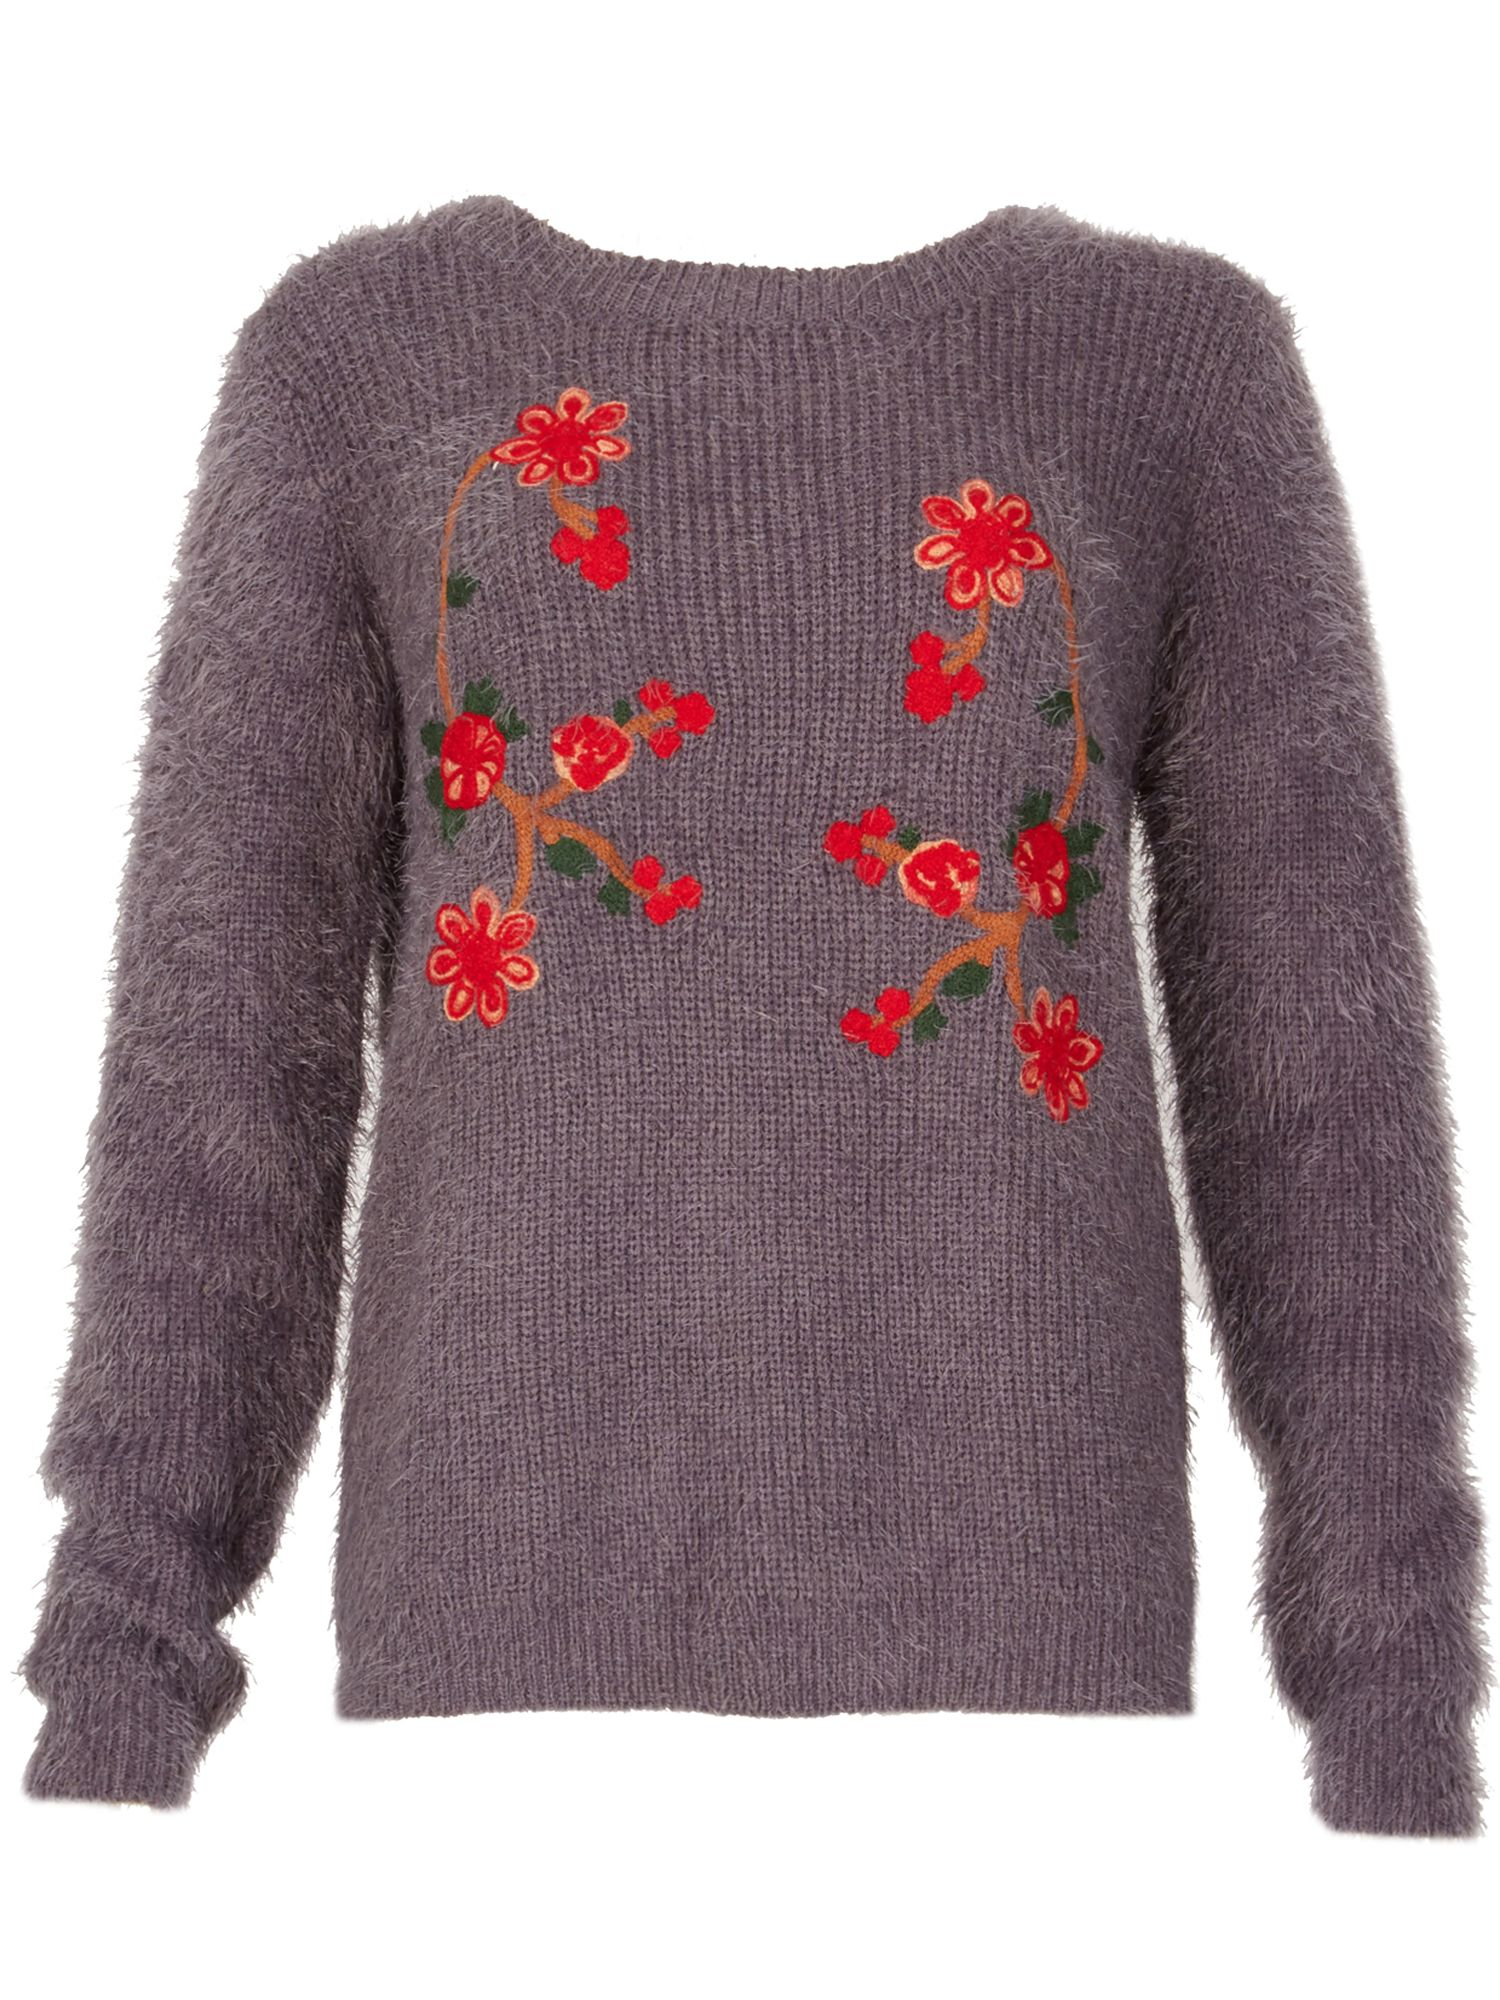 TENKI Floral Embroidered Jumper, Grey